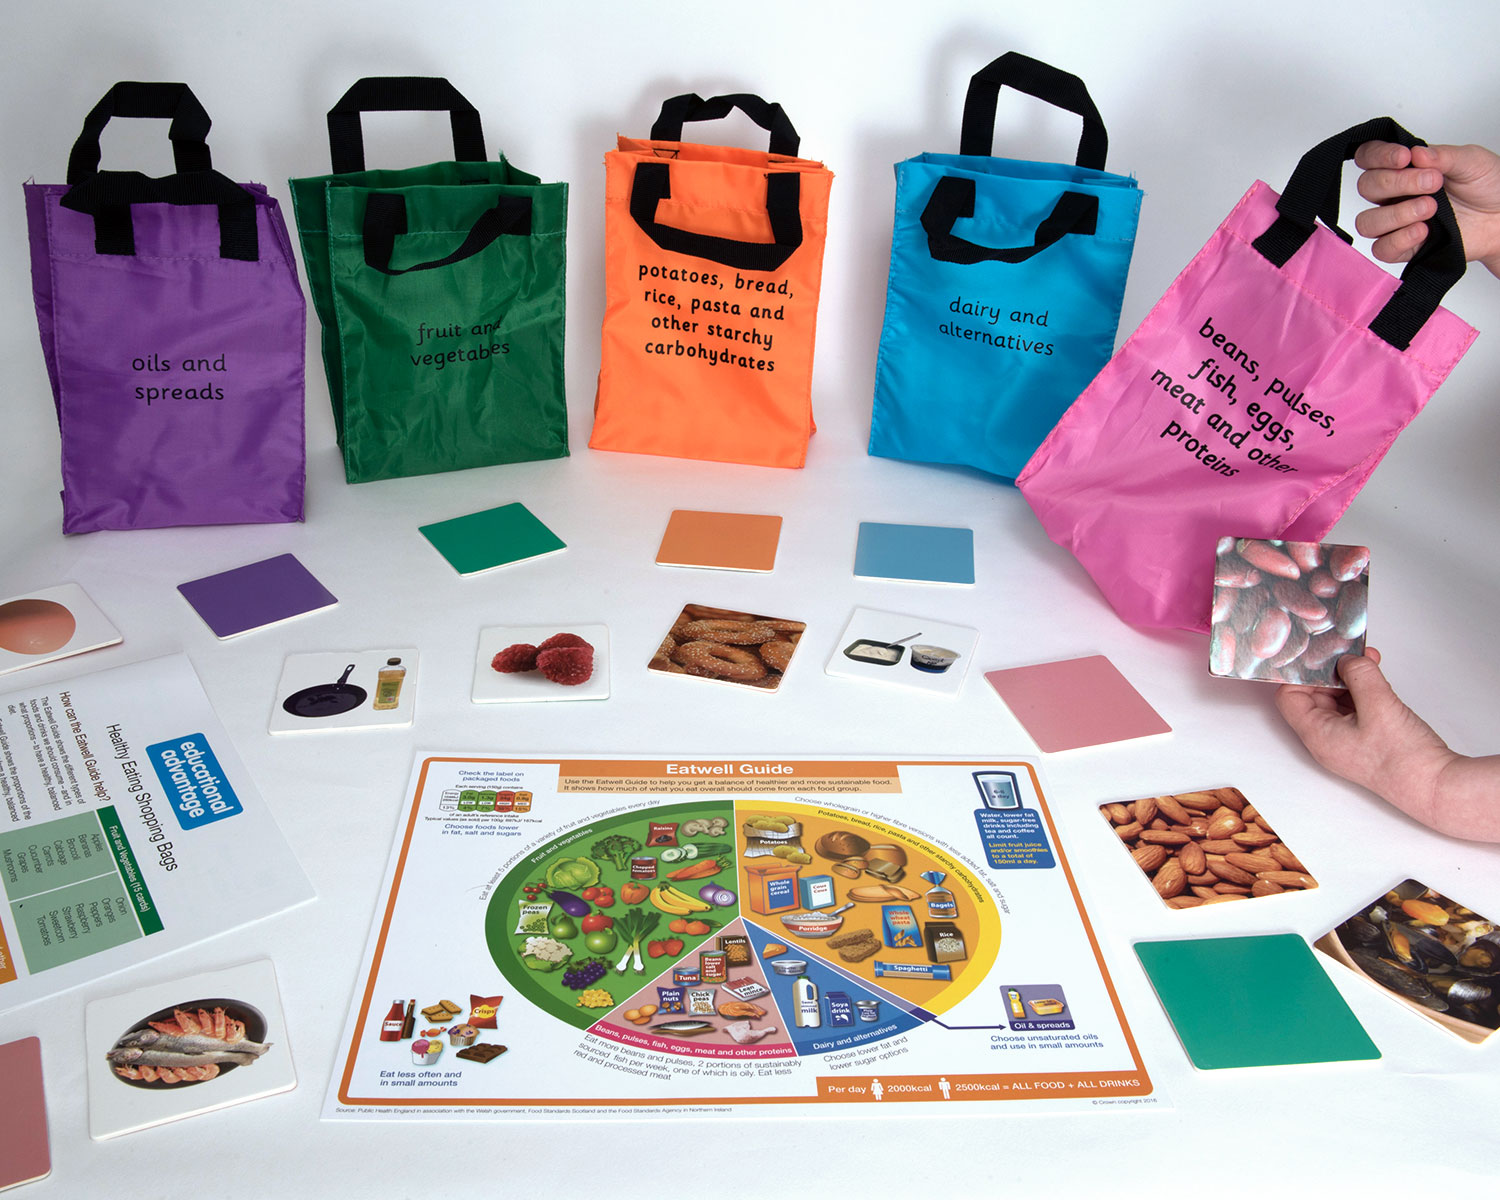 Healthy Eating Shopping Bags Game